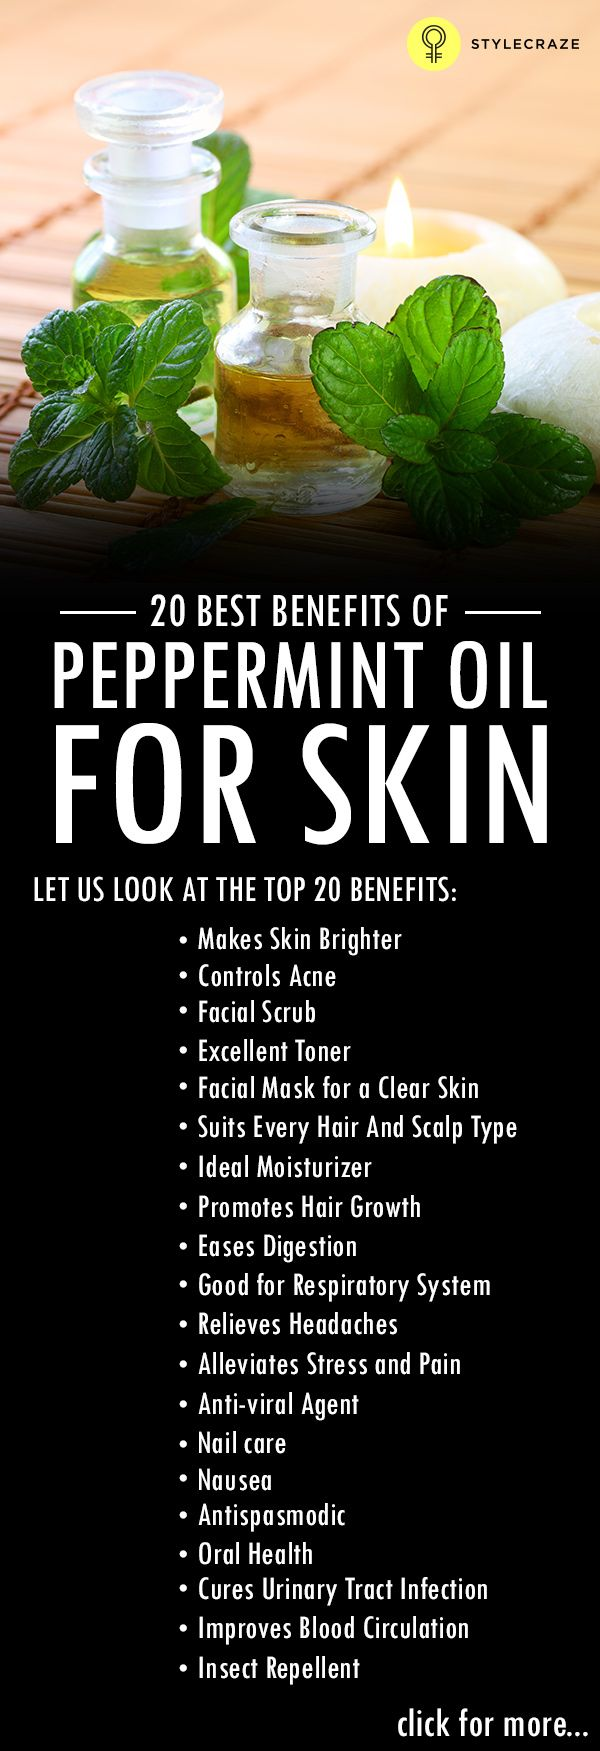 Peppermint oil is an essential oil that has many skin, hair and health benefits! Here is a list of the most effective uses.